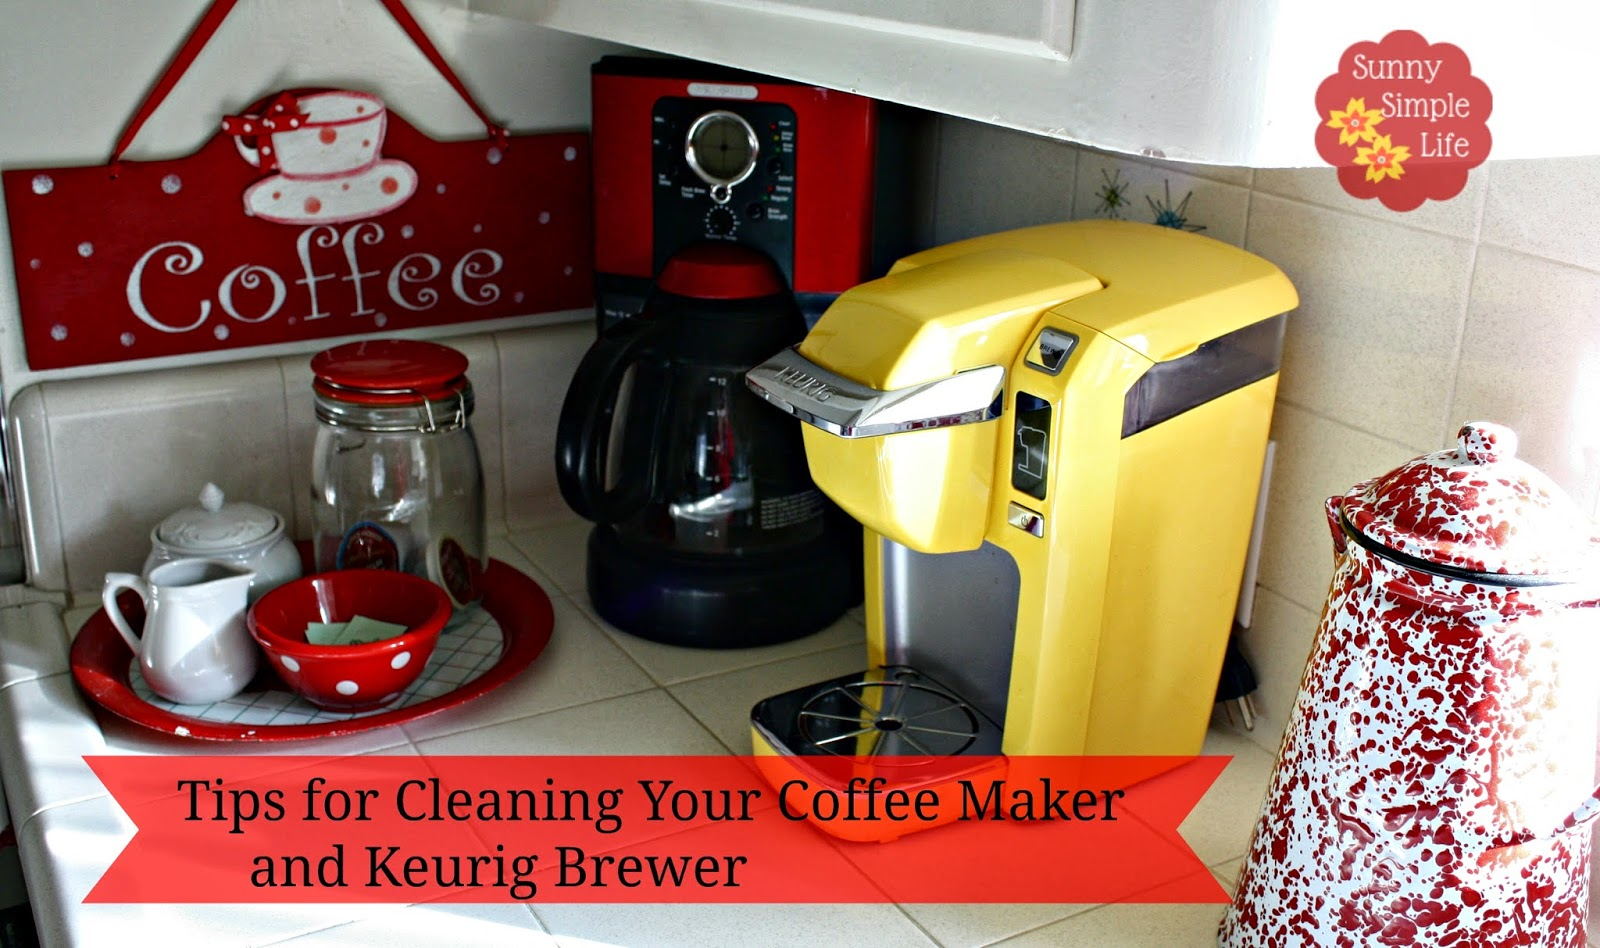 Electronic Clean Out Keurig Coffee Machine sunny simple life how to clean your coffee maker and keurig brewer here is all are going need you probably have them right now baking soda white vinegar for cleaning the make